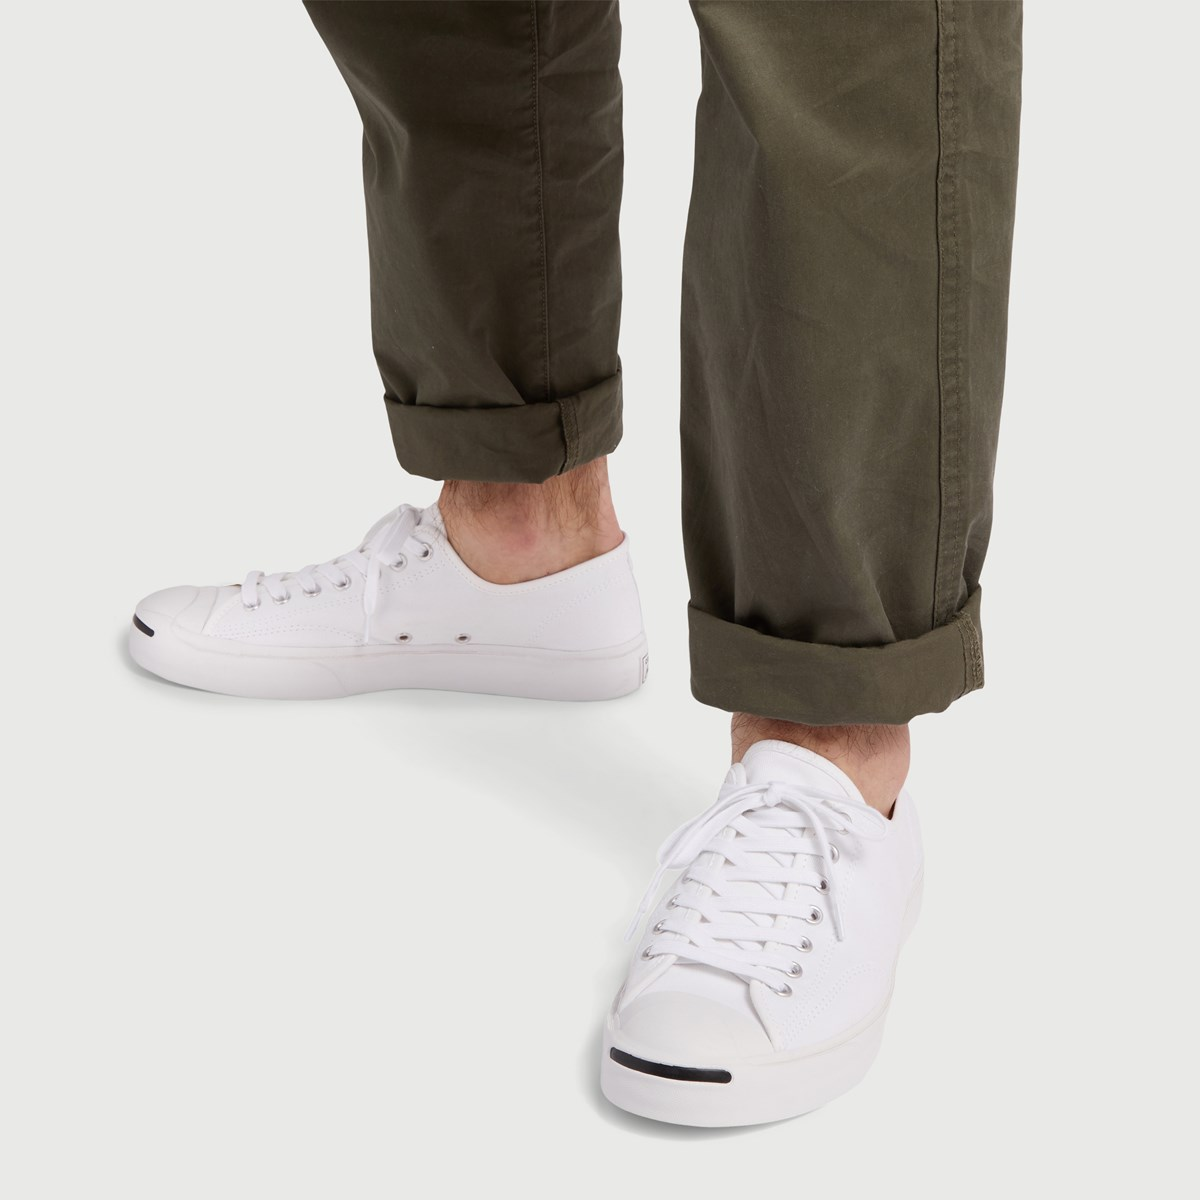 Men's Jack Purcell Sneakers in White